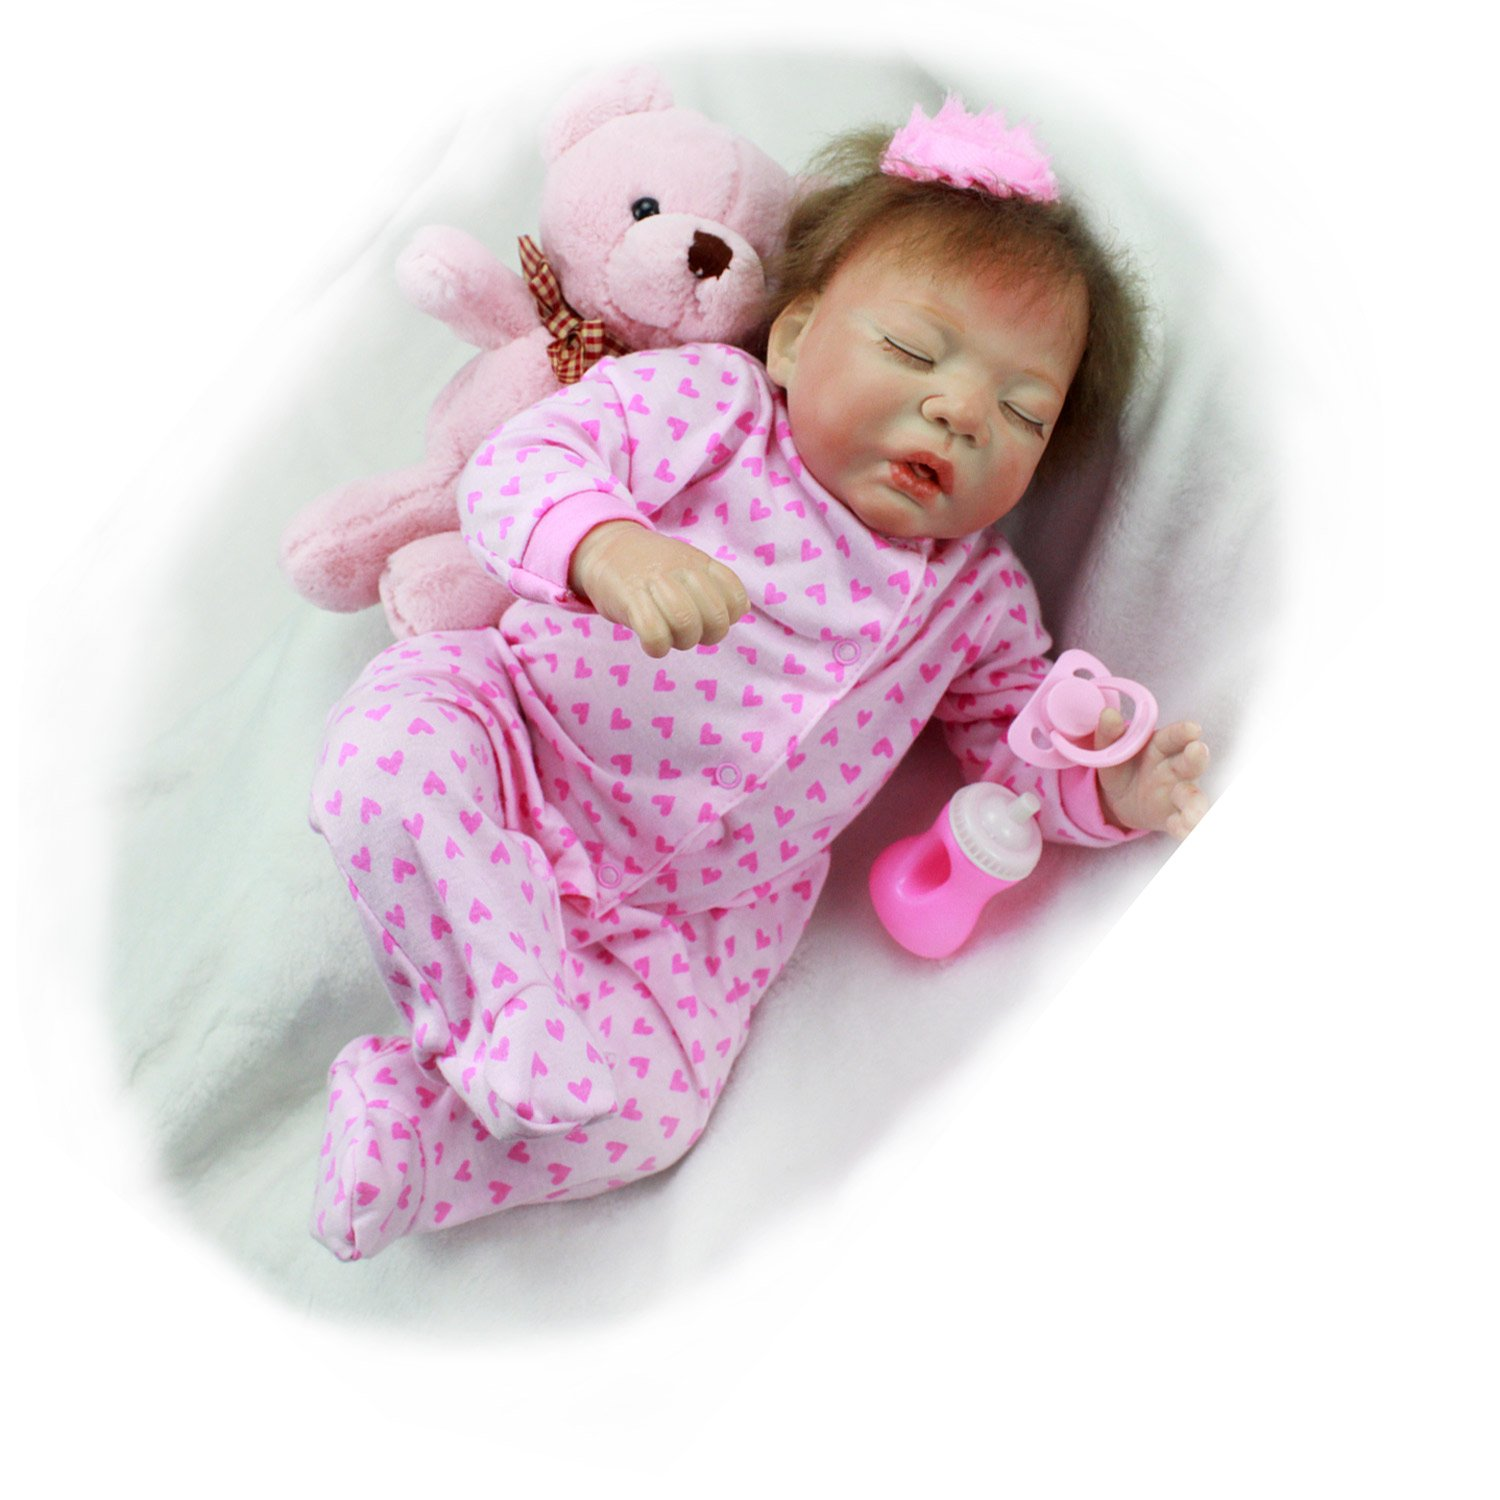 Pursue Baby Lifelike Reborn Baby Doll with Red Tongue, Mama Feeds Me! 20 Inch Soft Vinyl Cloth Body Realistic Weighted Newborn Infant Doll